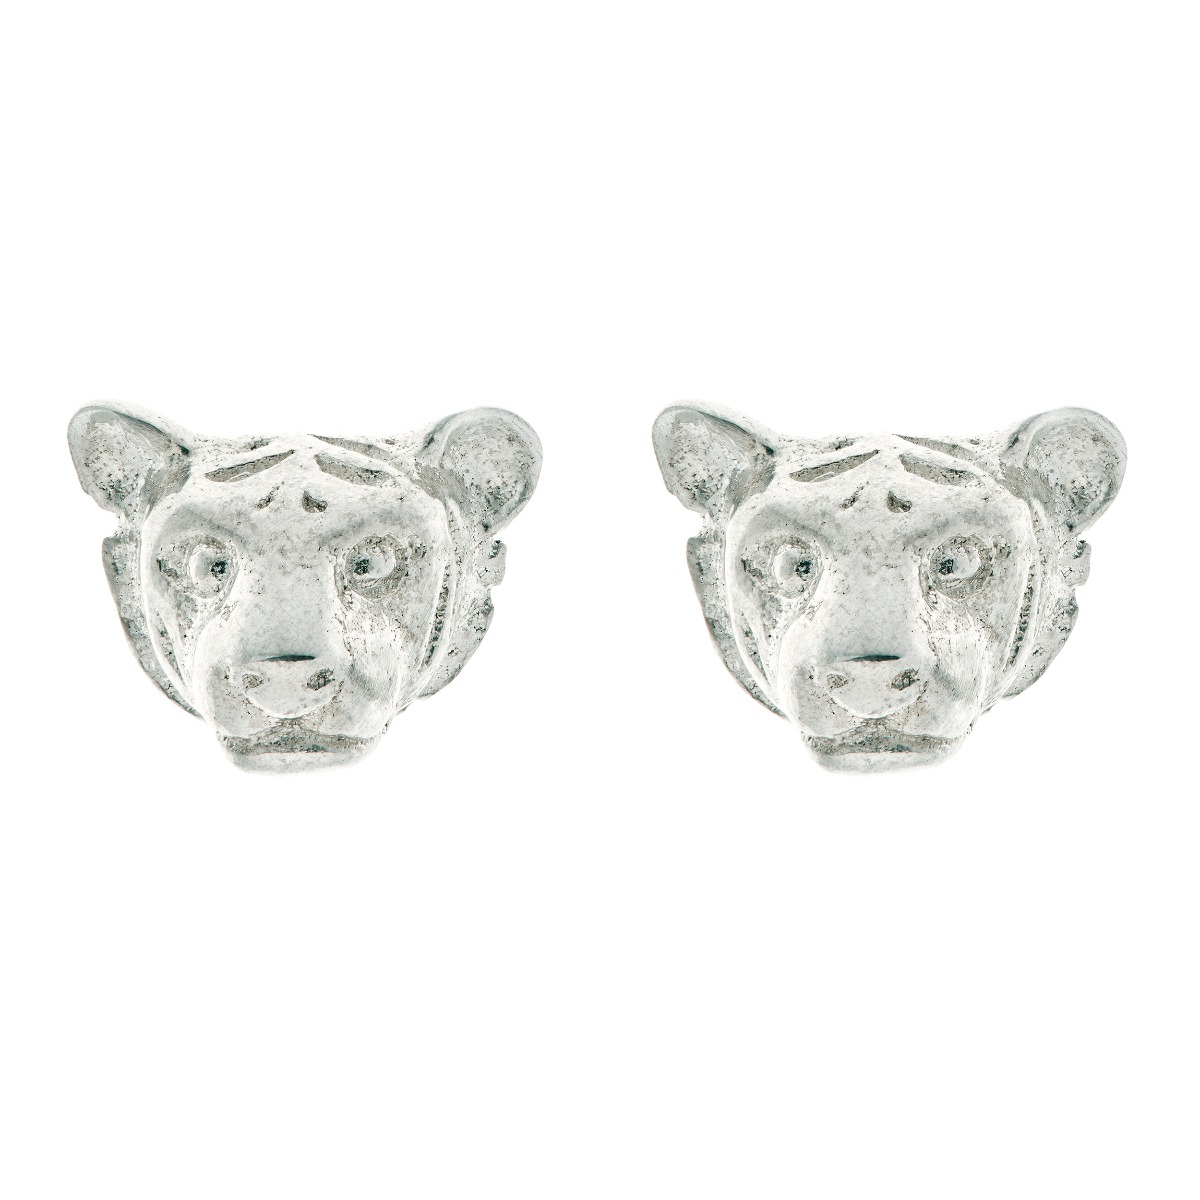 Chinese zodiac stud earrings (tiger)